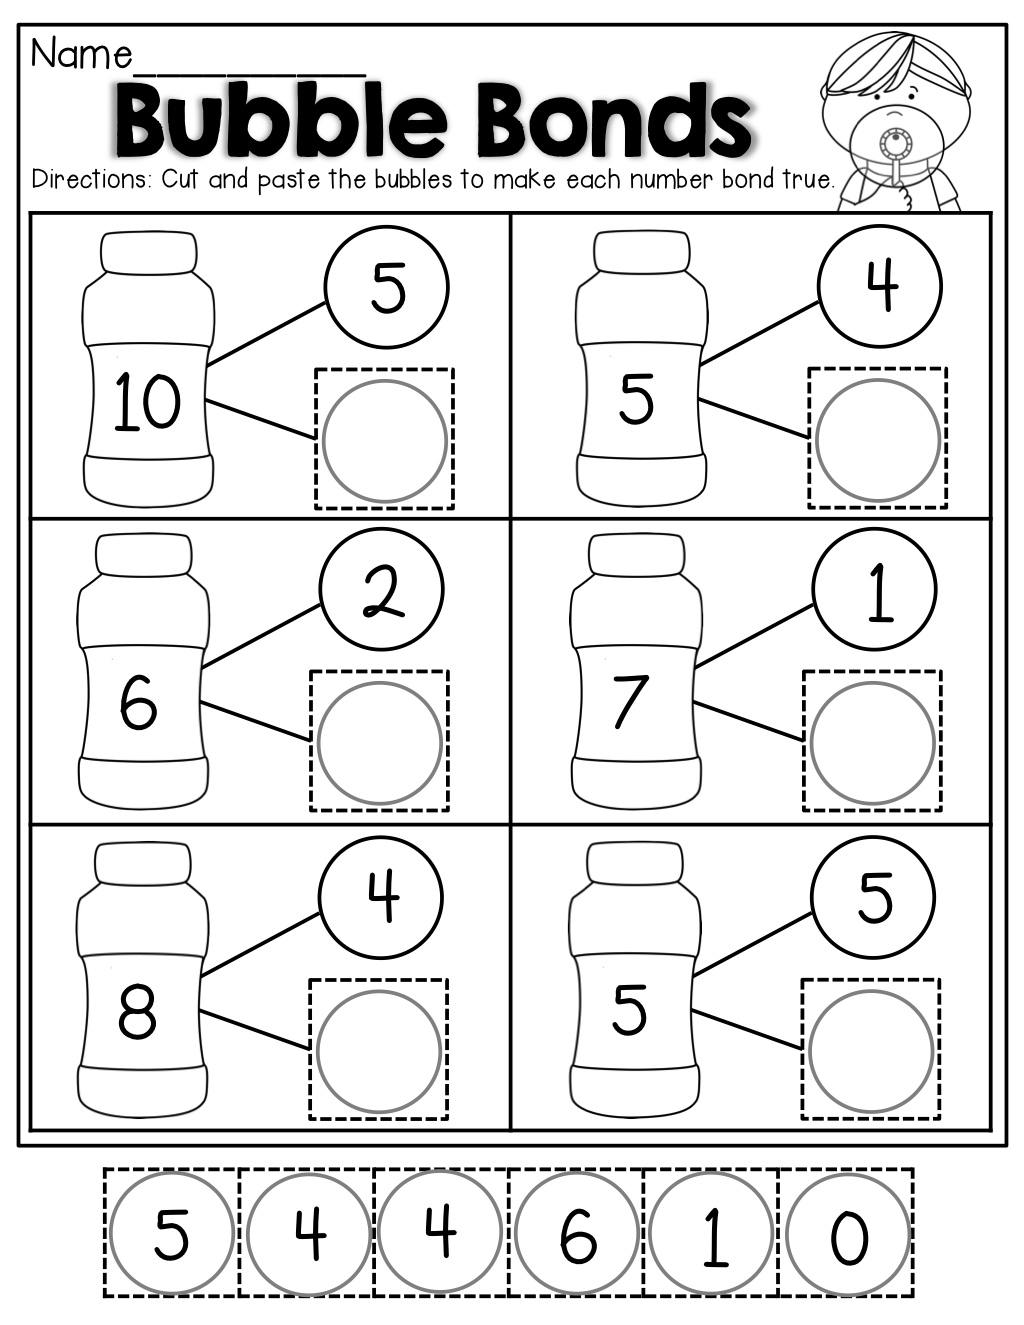 Number Bubble Bonds (Cut And Paste) | Kindergarten Activities - Free Printable Number Bond Template